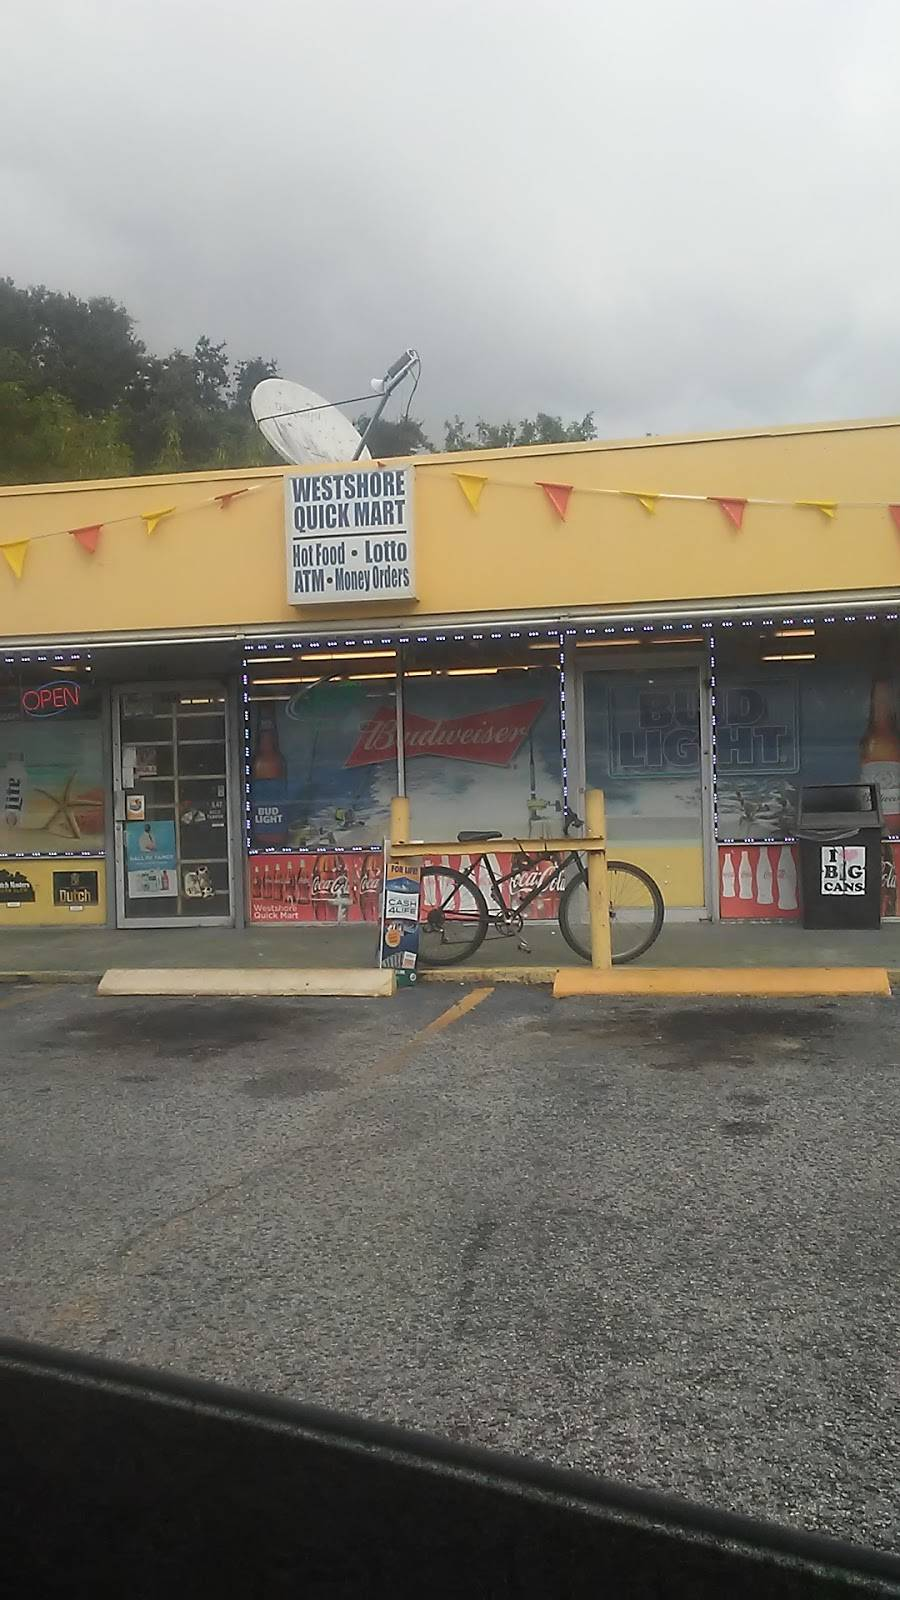 Westshore Quick Mart - convenience store  | Photo 2 of 5 | Address: 6802 S West Shore Blvd, Tampa, FL 33616, USA | Phone: (813) 805-6535